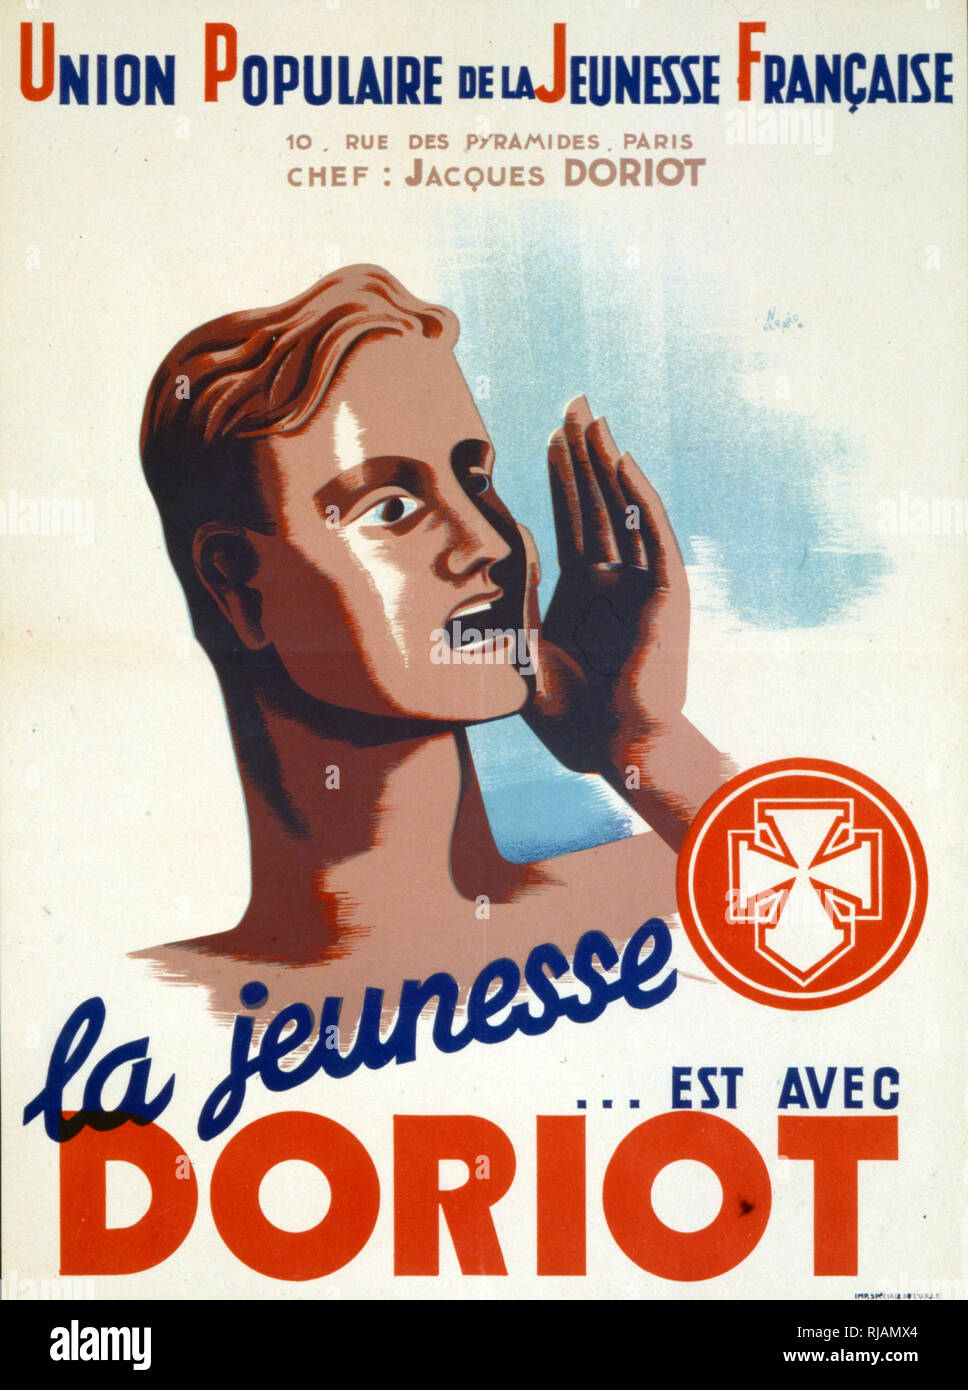 World War two, Collaborationist French propaganda poster for Jacques Doriot (1898 - 1945), a French politician prior to and during World War II. He began as a communist but then turned fascist. In 1922 he became a member of the Presidium of the Executive Committee of the Comintern, and a year later was made Secretary of the French Federation of Young Communists. elected to the French Chamber of Deputies (the Third Republic equivalent of the National Assembly) by the people of Saint Denis. Doriot was expelled from the Communist Party in 1934. Still a member of the Chamber of Deputies, his views - Stock Image